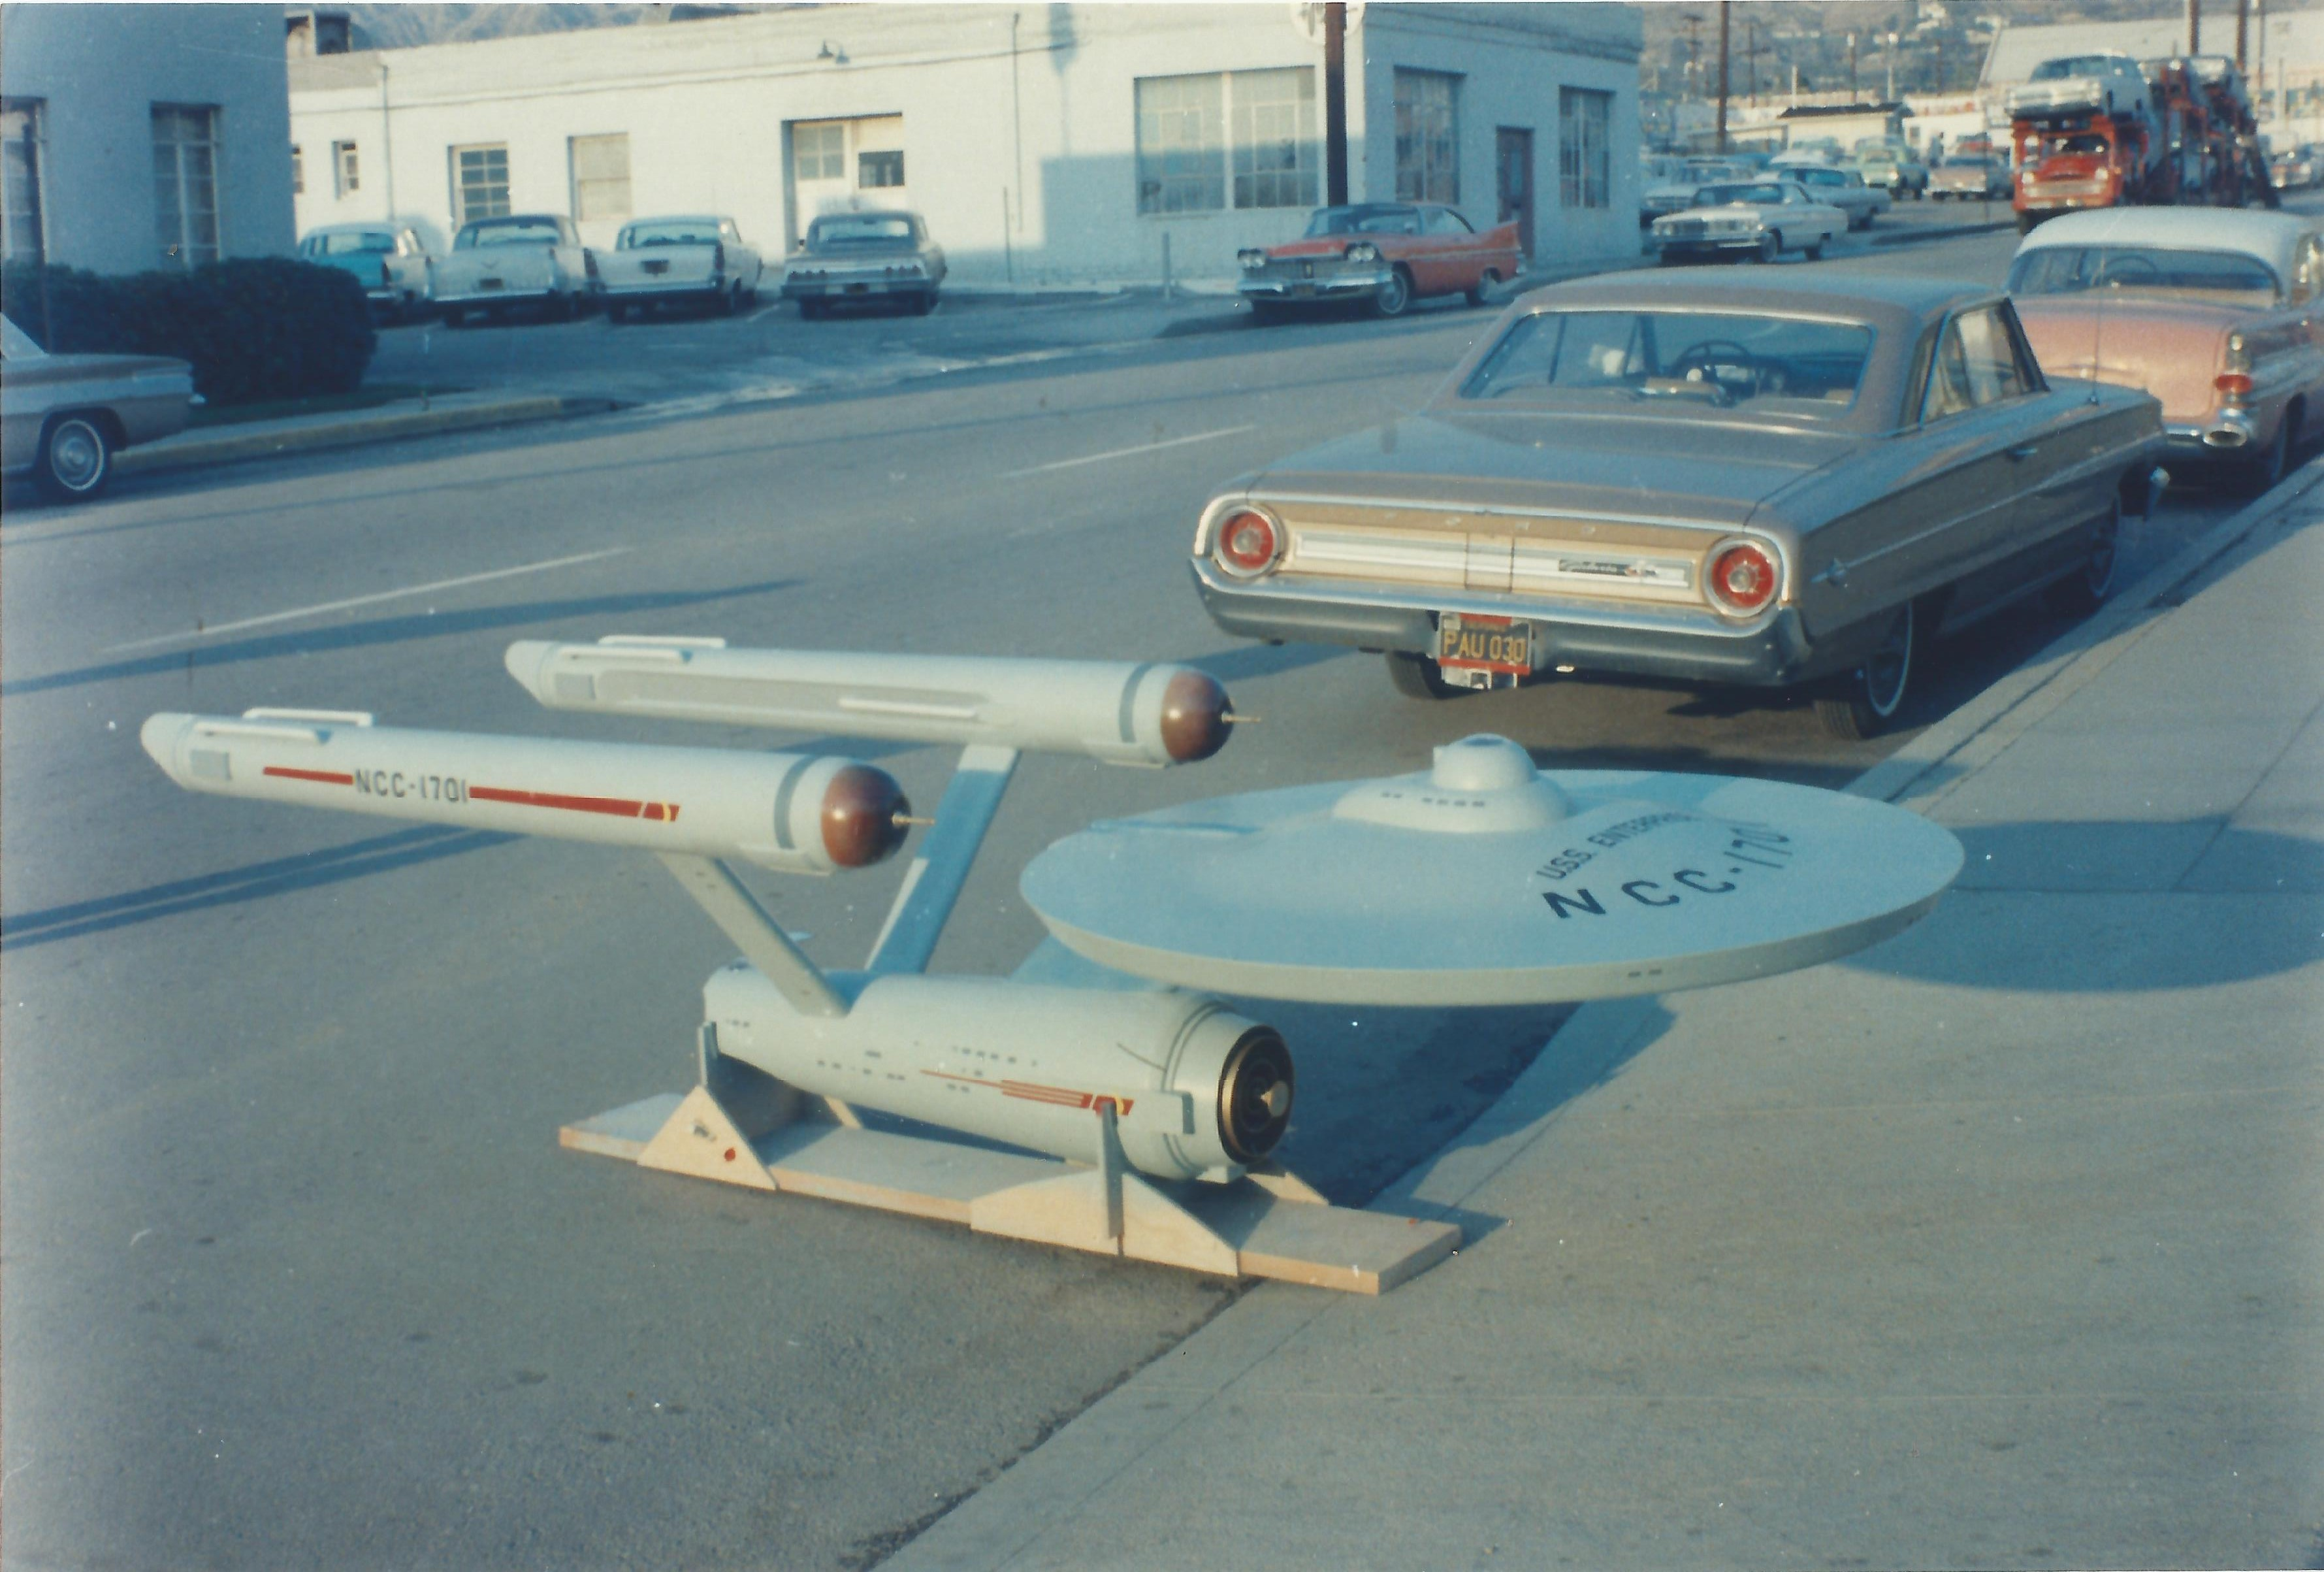 Starship Enterprise Model in 1964